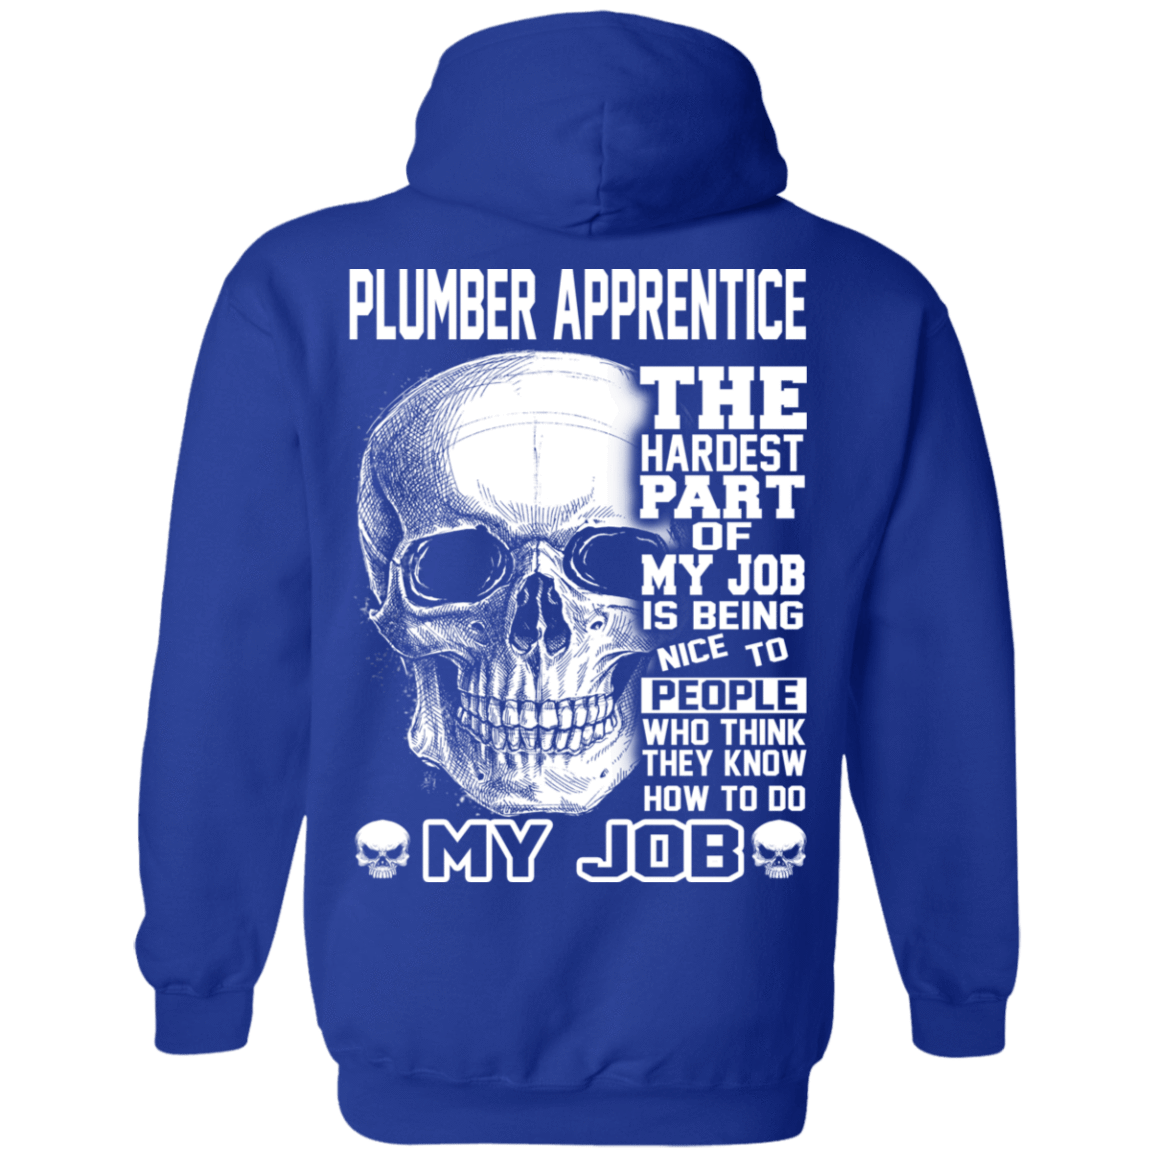 Plumber Apprentice The Hardest Part Of My Job 541-4765-72369947-23175 - Tee Ript